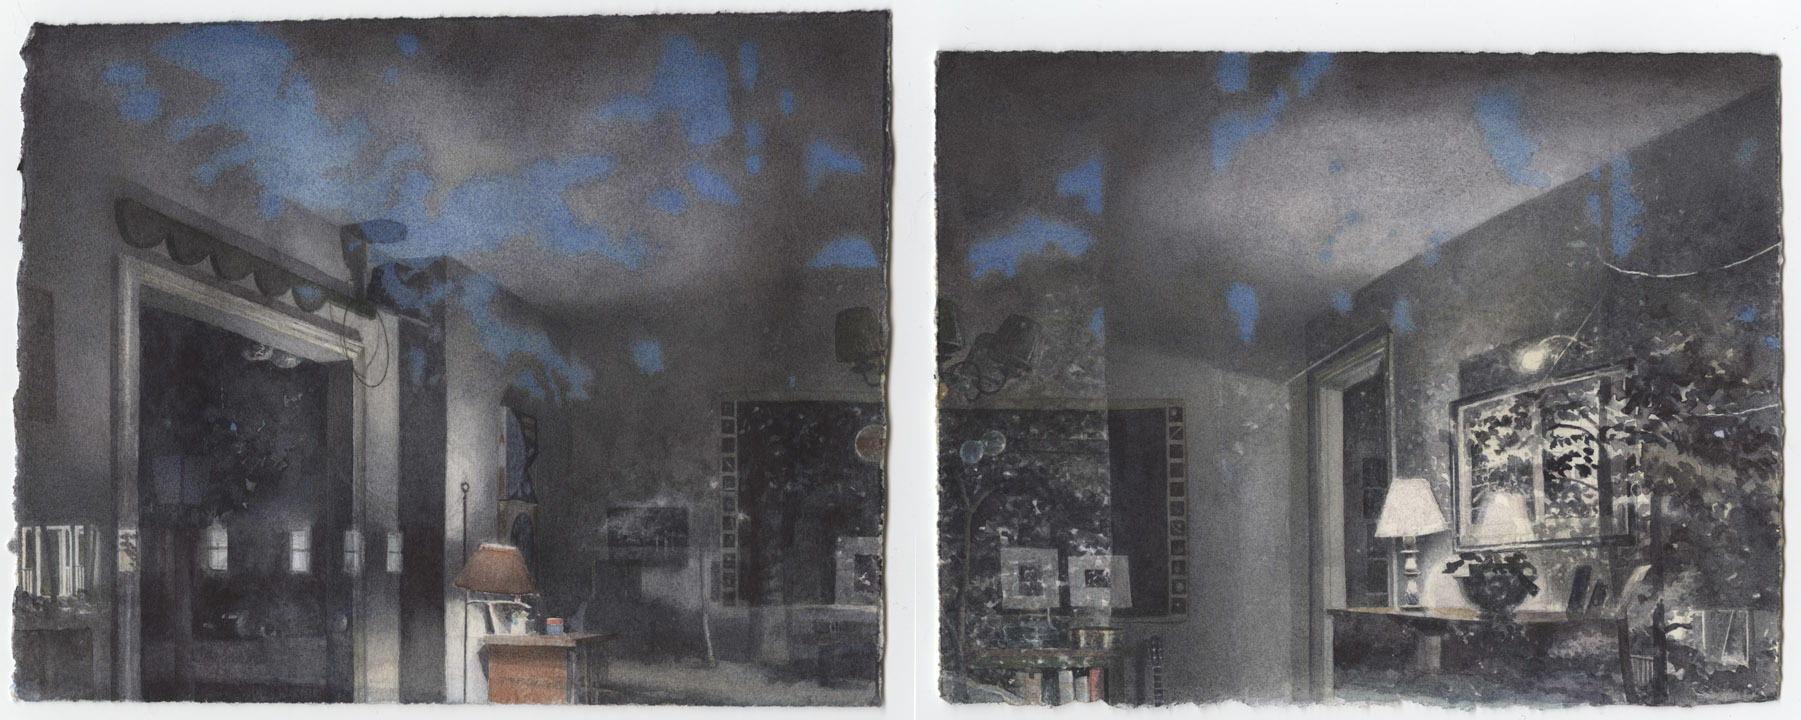 Self-Portrait with Night: Two Panels III image